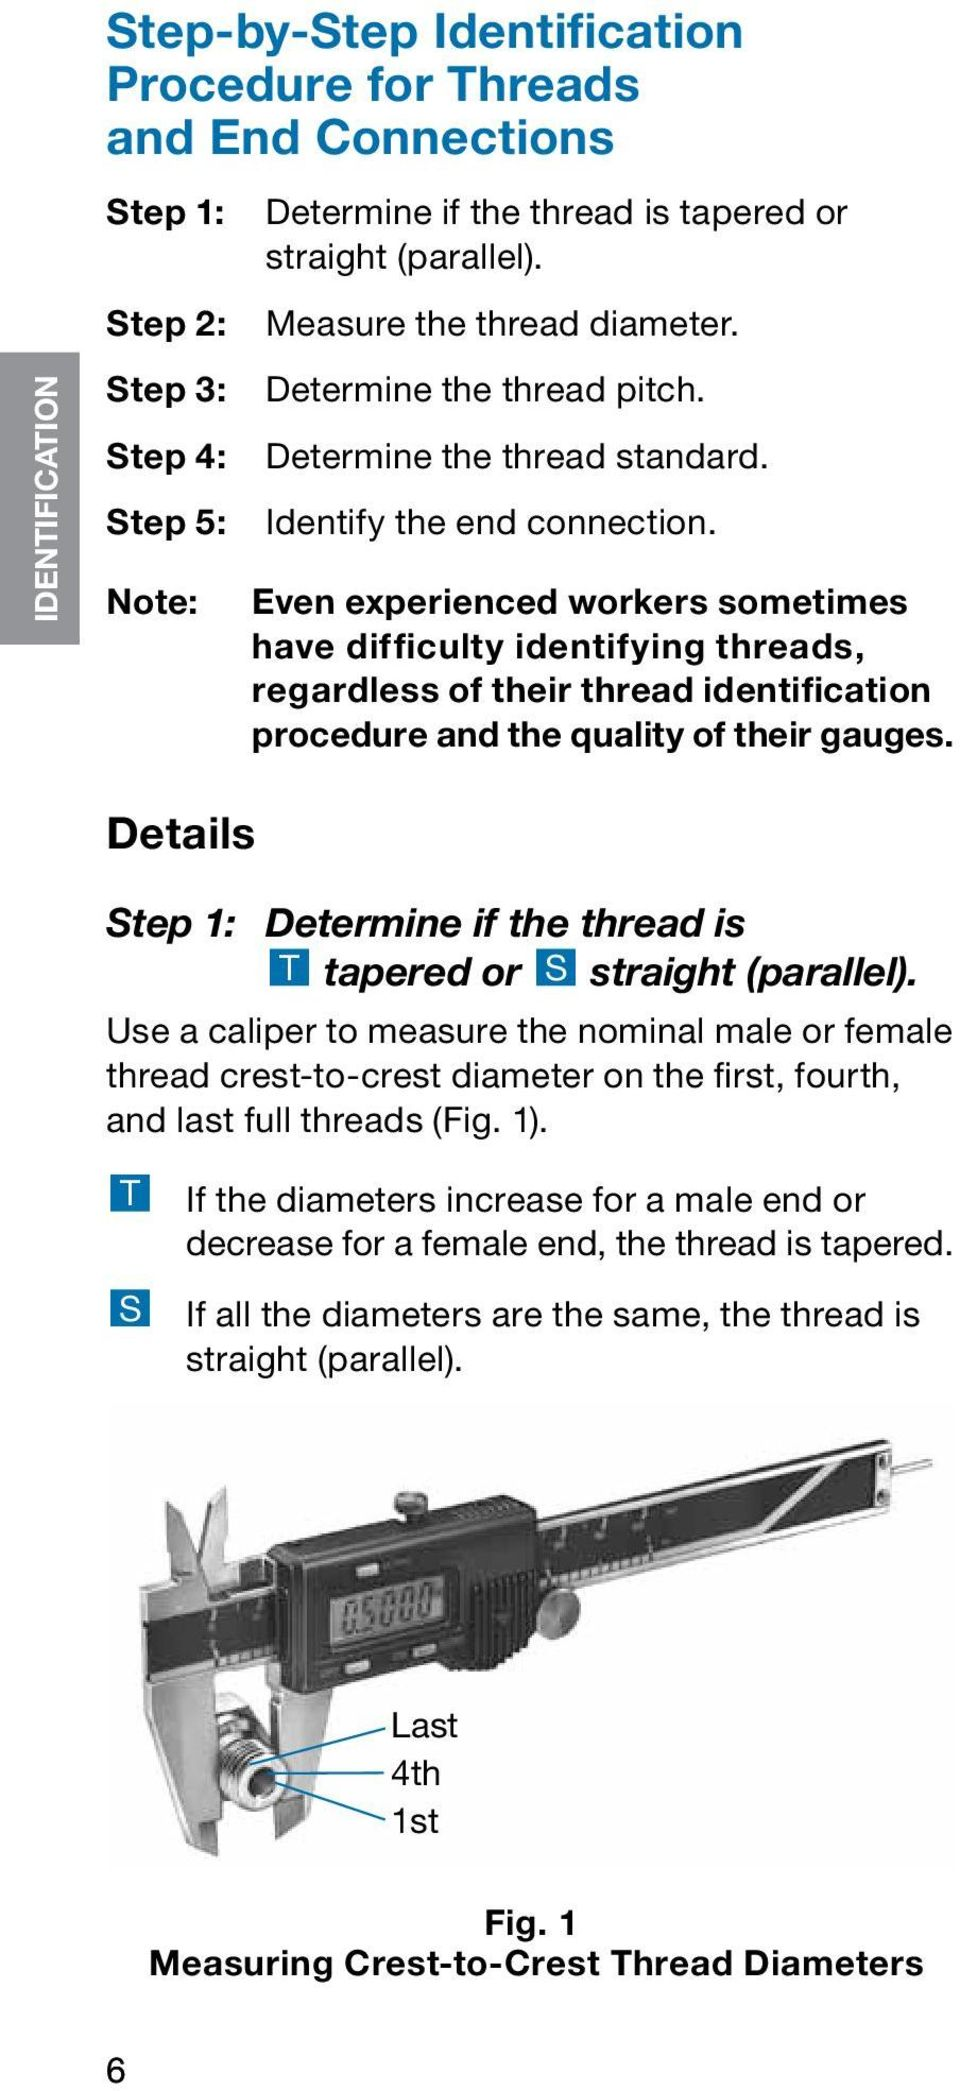 Even experienced workers sometimes have difficulty identifying threads, regardless of their thread identification procedure and the quality of their gauges.